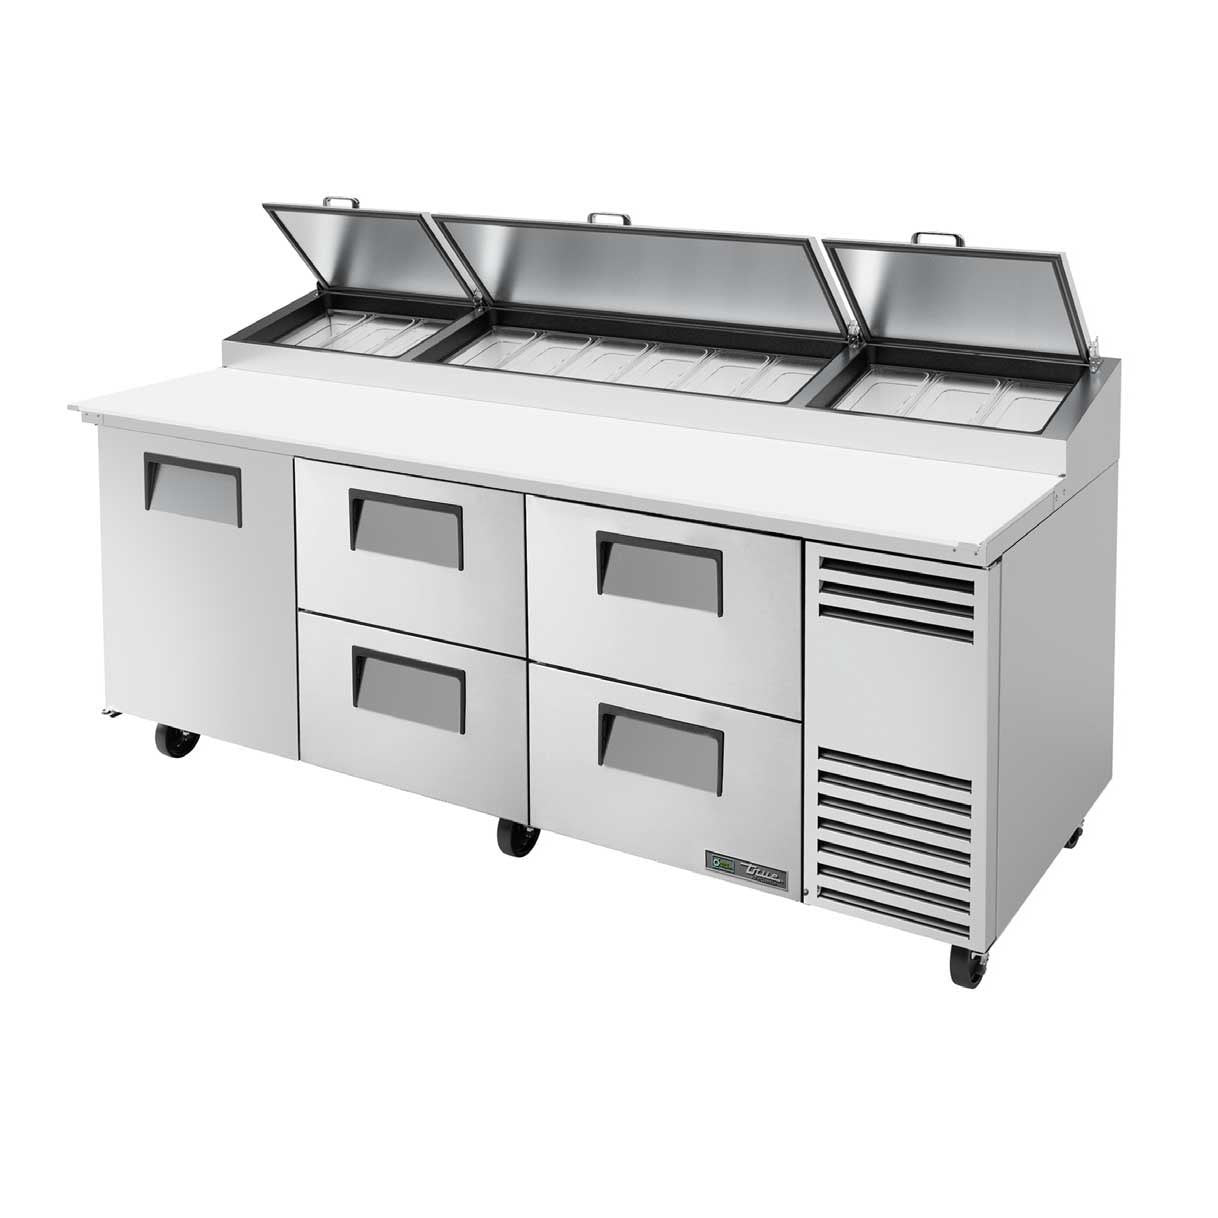 "True TPP-AT-93D-4-HC Pizza Prep, 33-41°F Pan Rail, Stainless Steel Cover, 19.5""D Cutting Board, 1 Door, 4 Drawers, 115v"